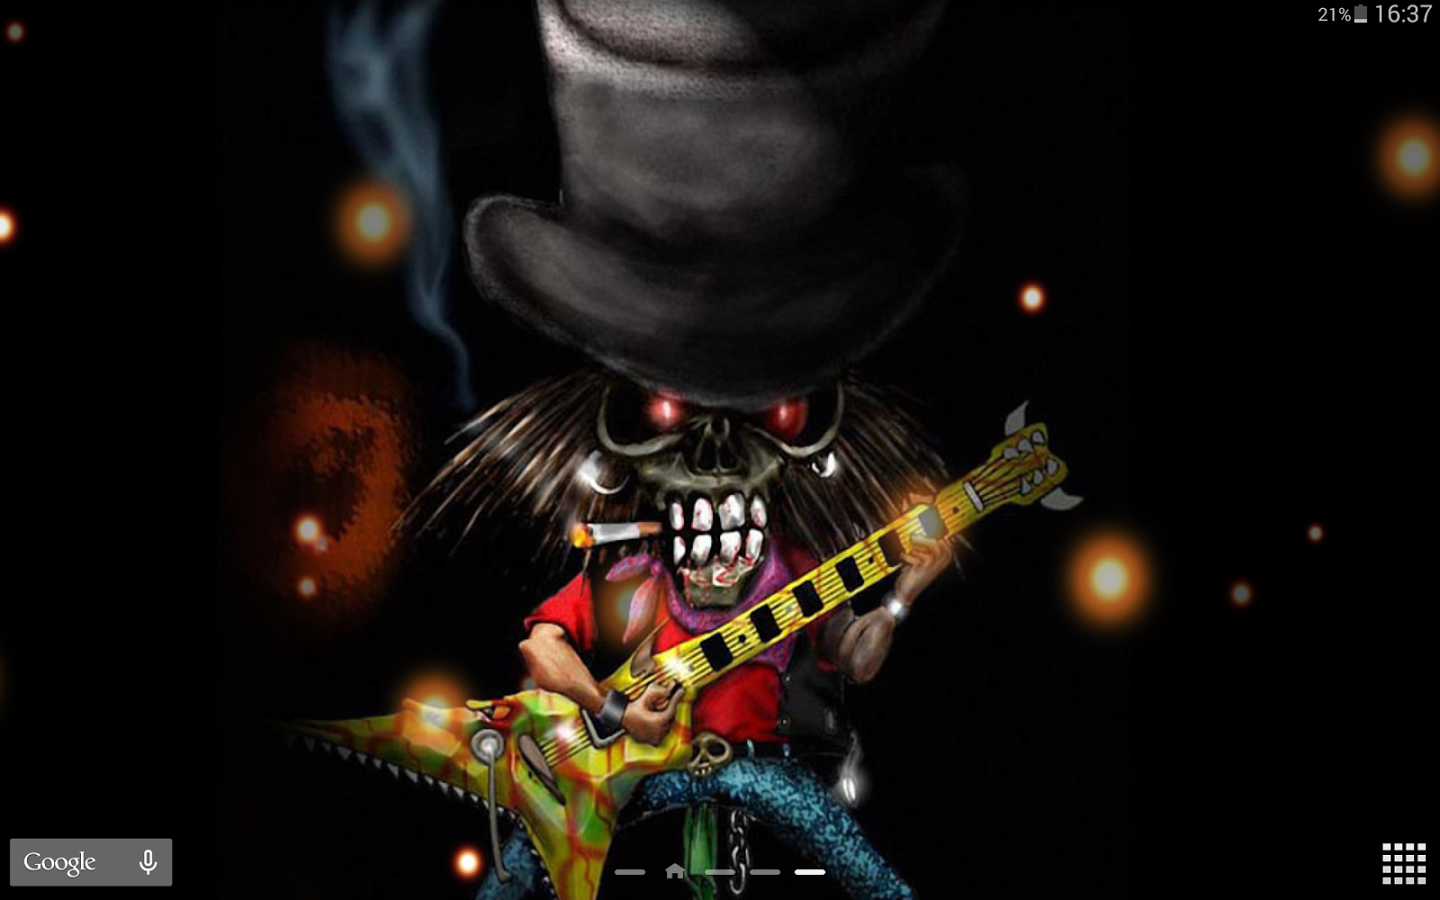 are you a hard core rock musician download rock live wallpaper a 1440x900